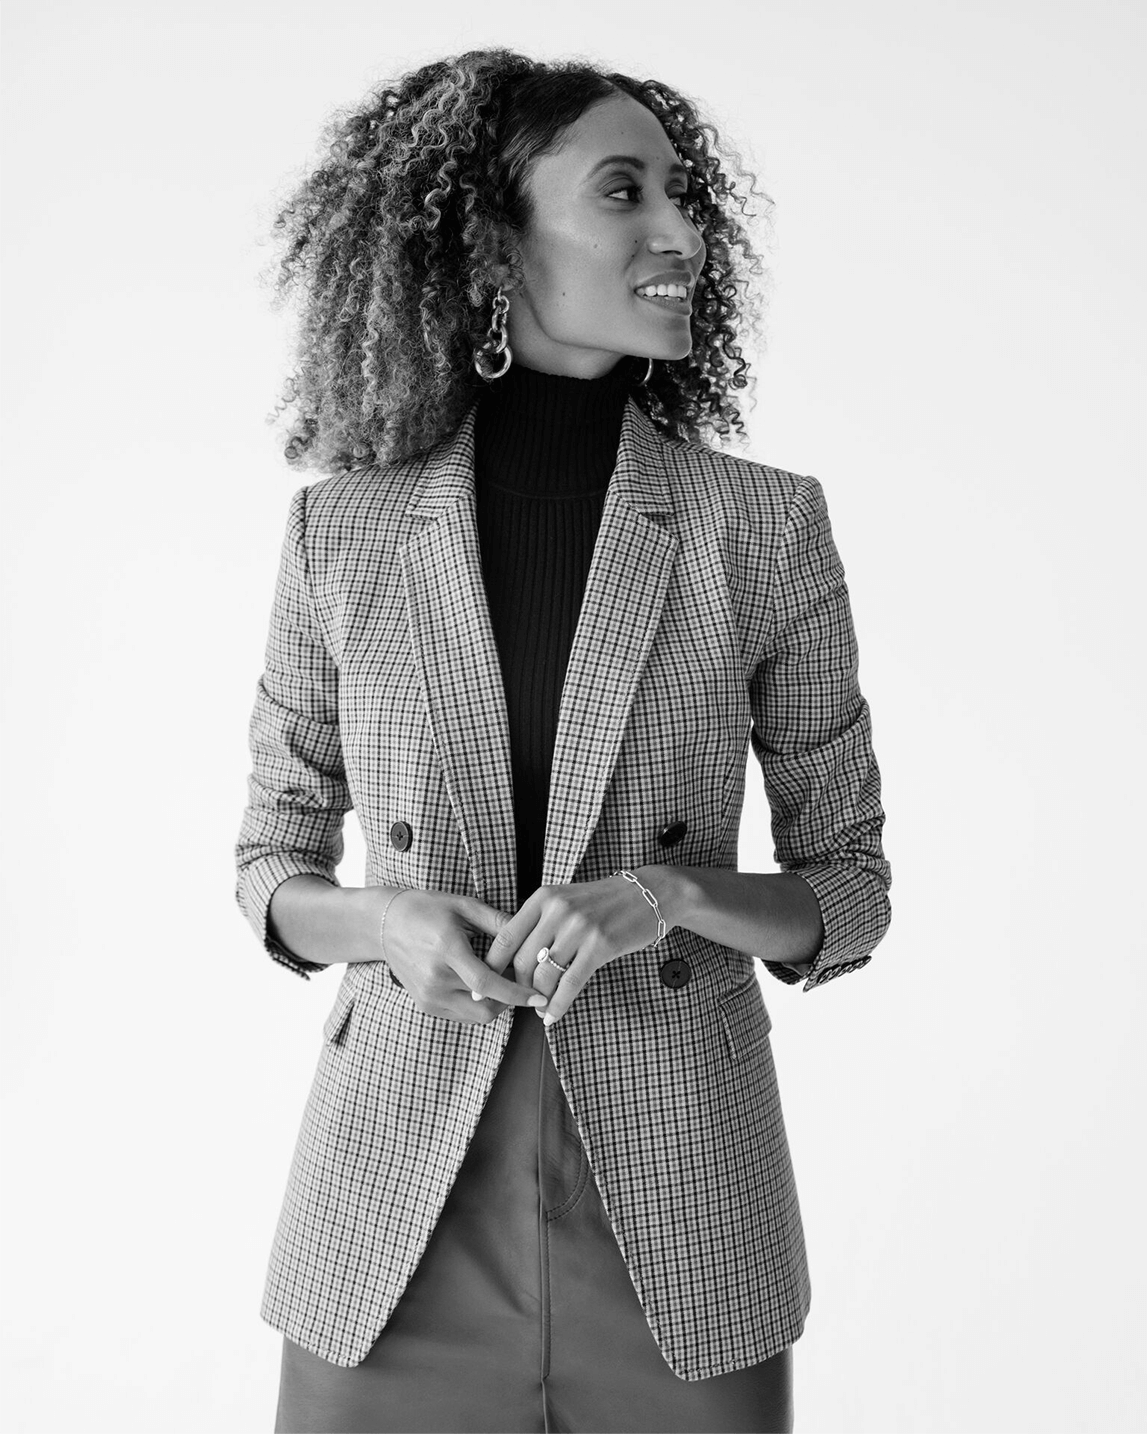 Elaine Welteroth in Banana Republic